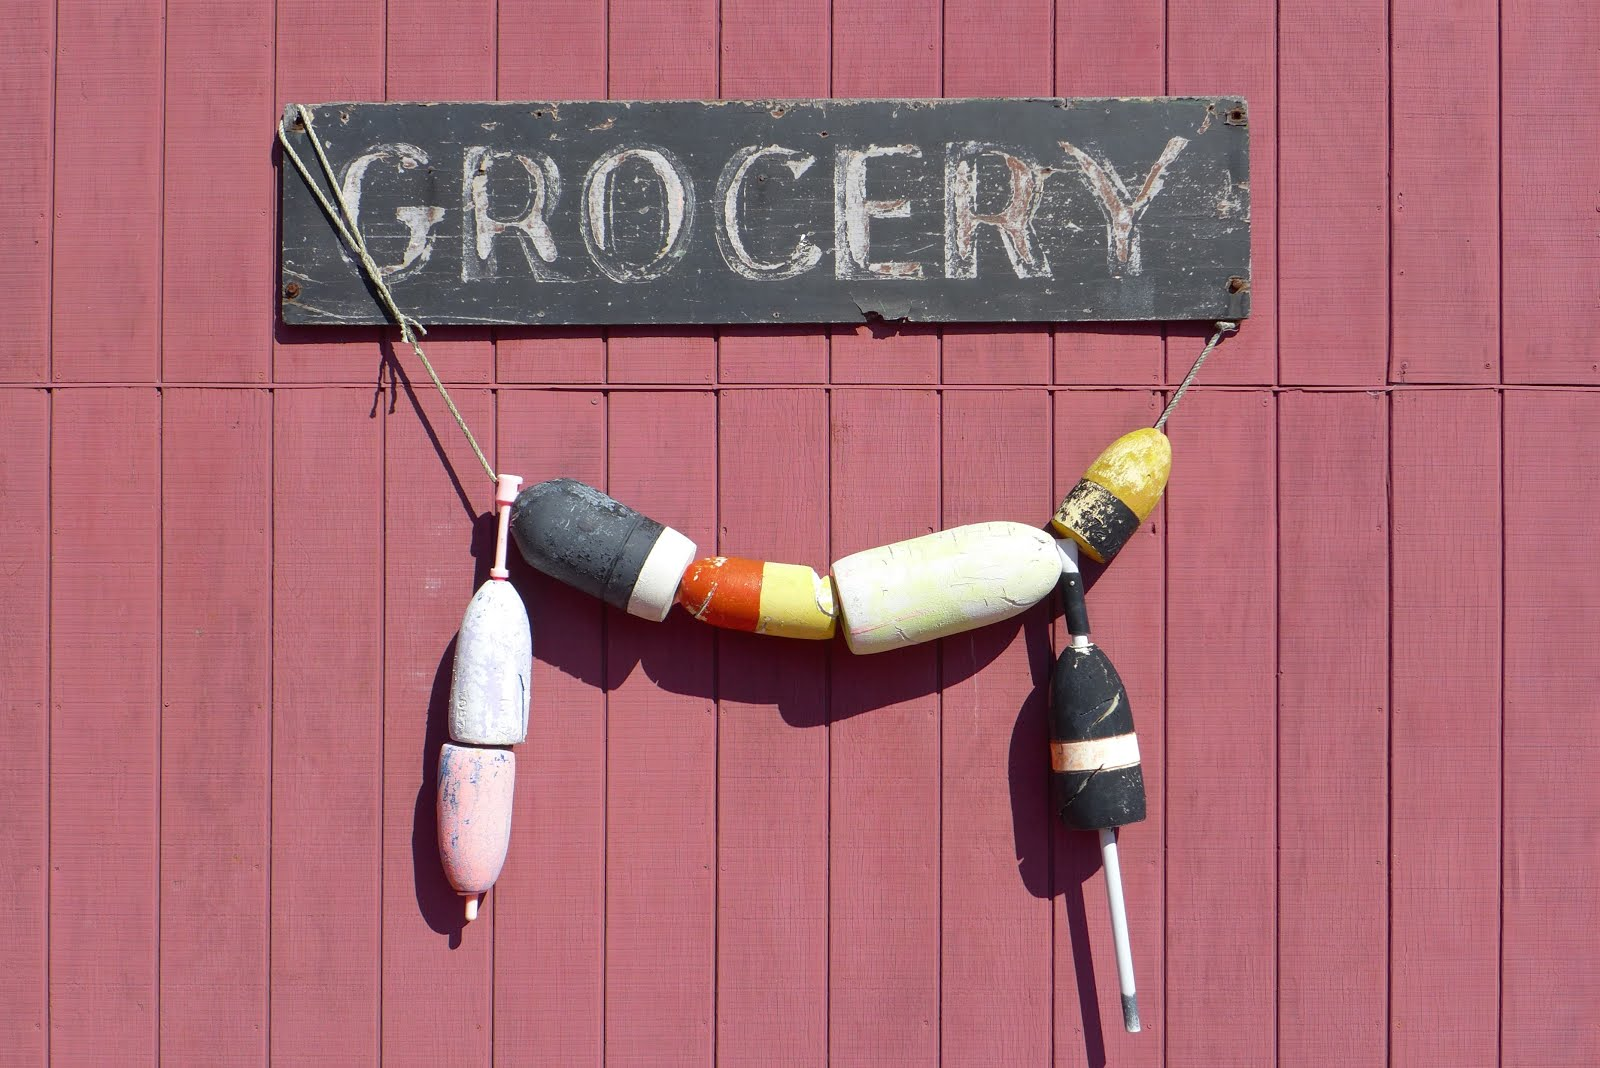 Grocery Store: Harpswell, Maine